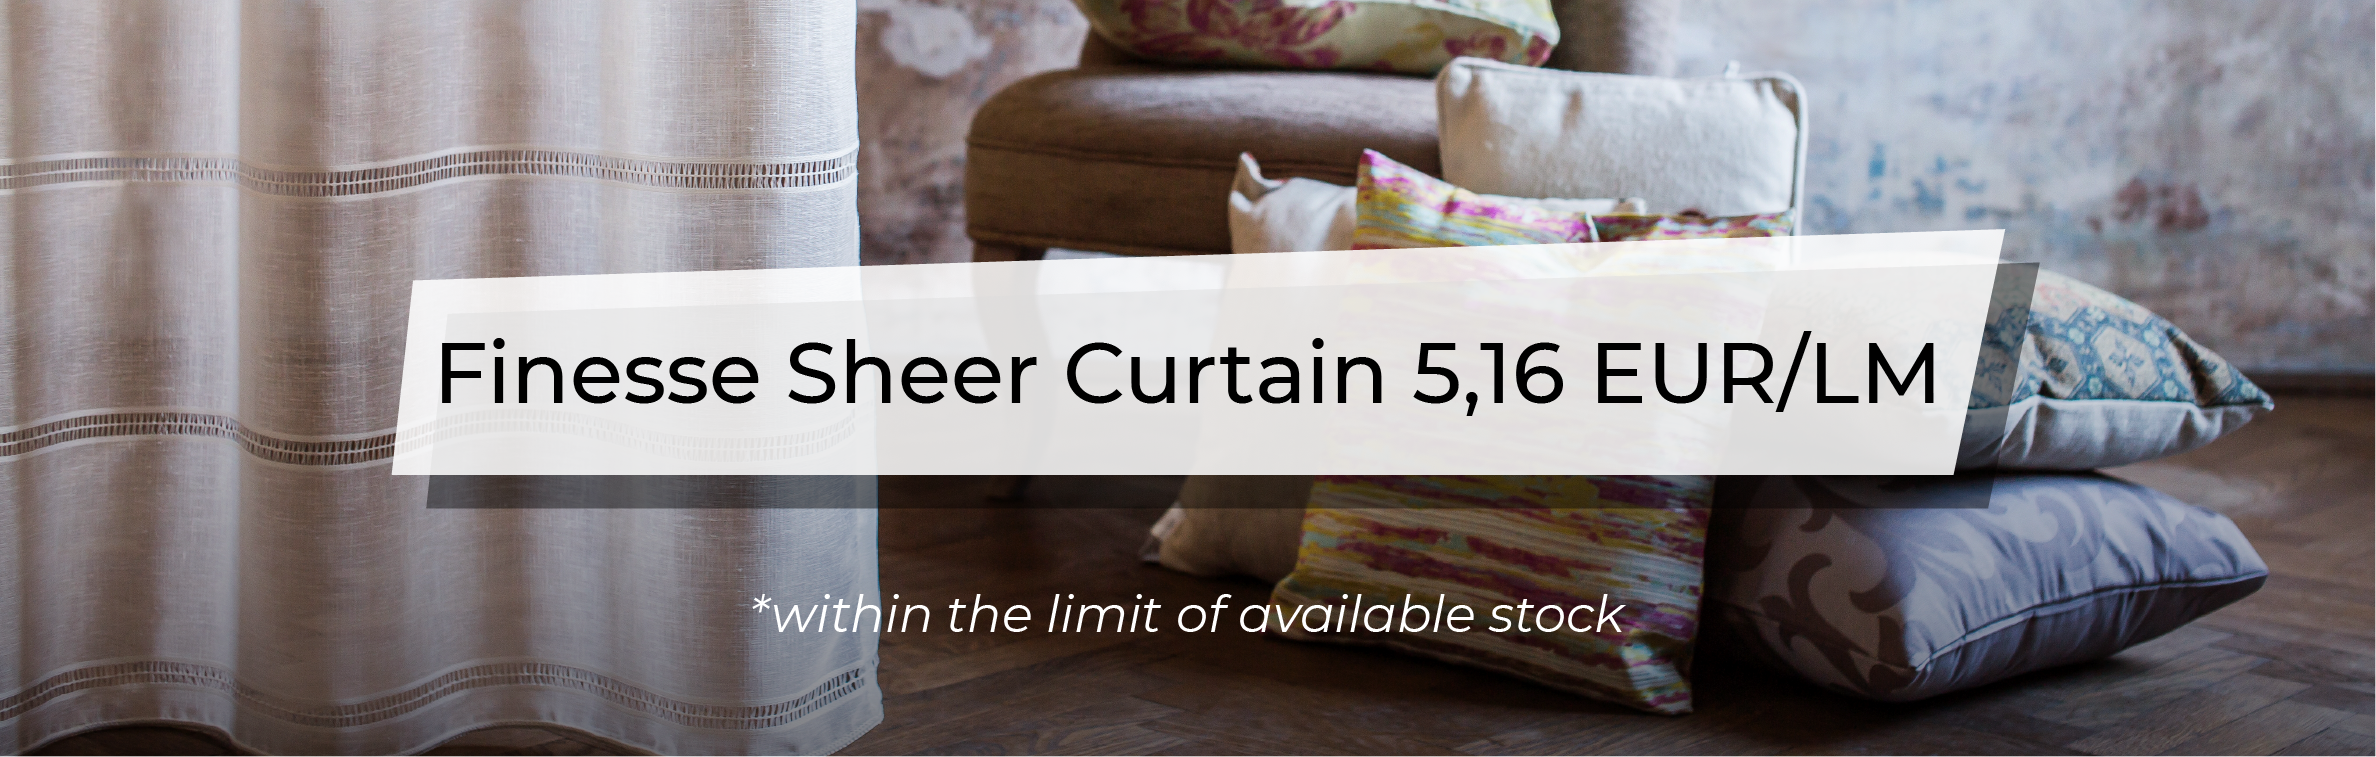 December Promotion - Finesse Sheer Curtain